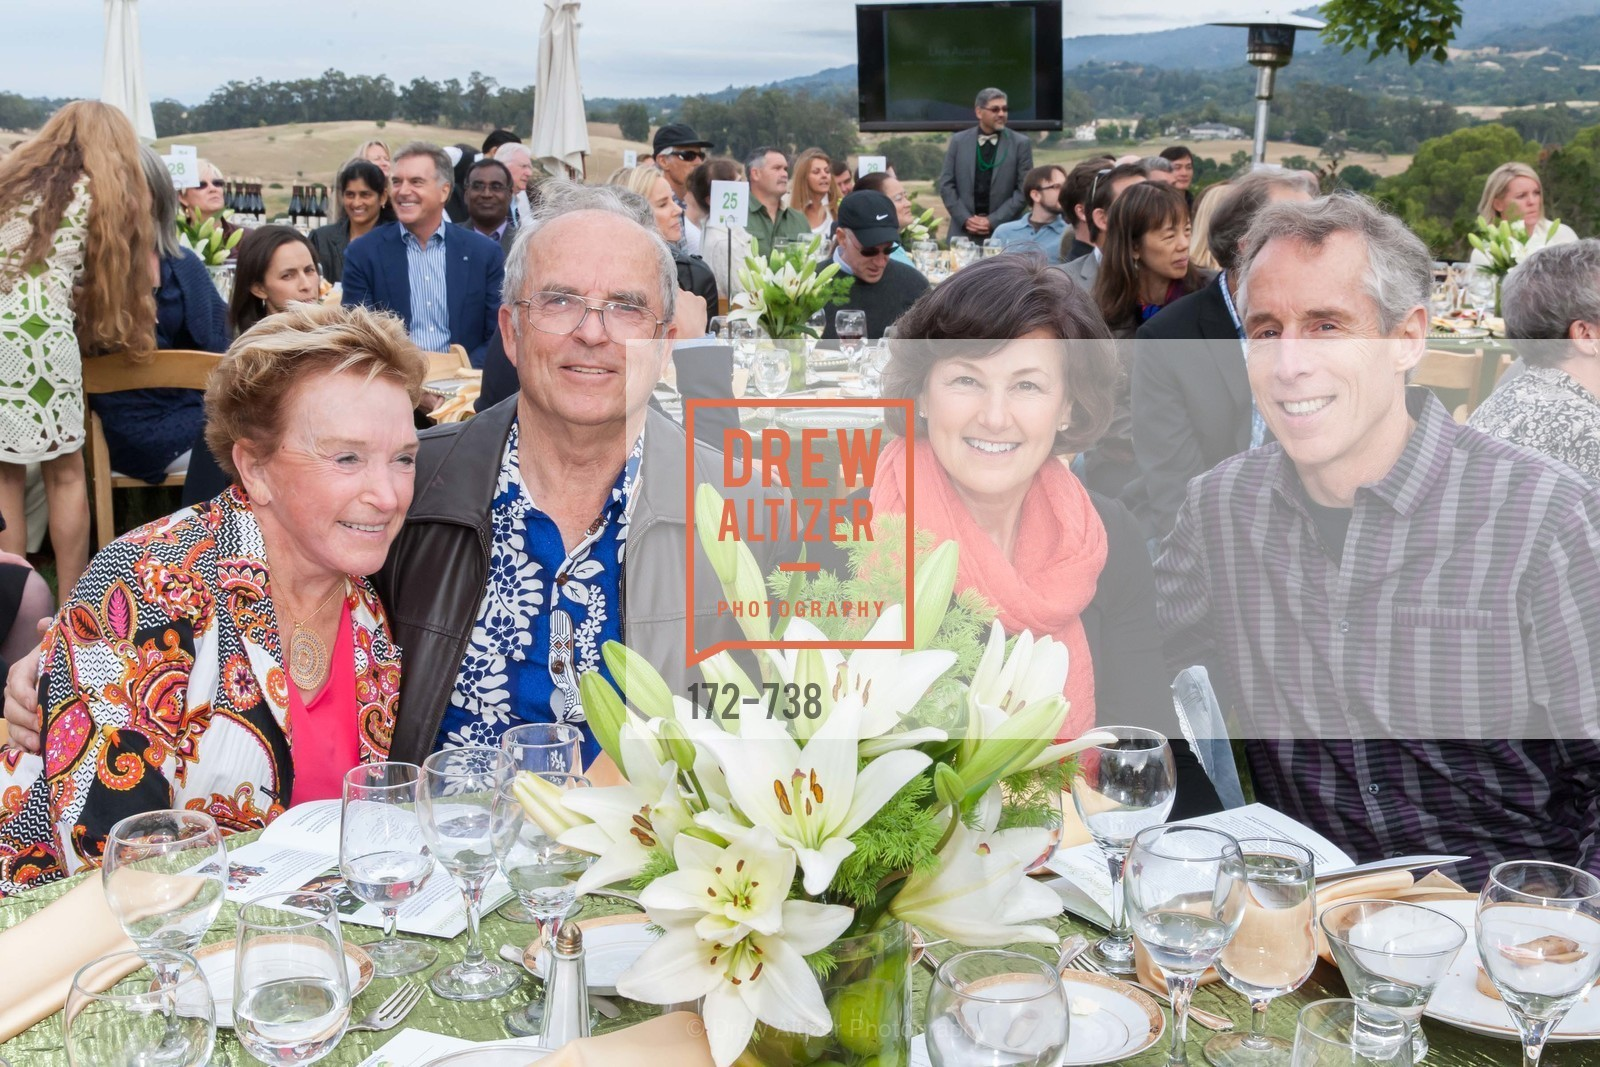 Wanda Ginner, Lance Ginner, Denise Bollinger, Clay Bollinger, LymeAid 2015, US, May 18th, 2015,Drew Altizer, Drew Altizer Photography, full-service agency, private events, San Francisco photographer, photographer california